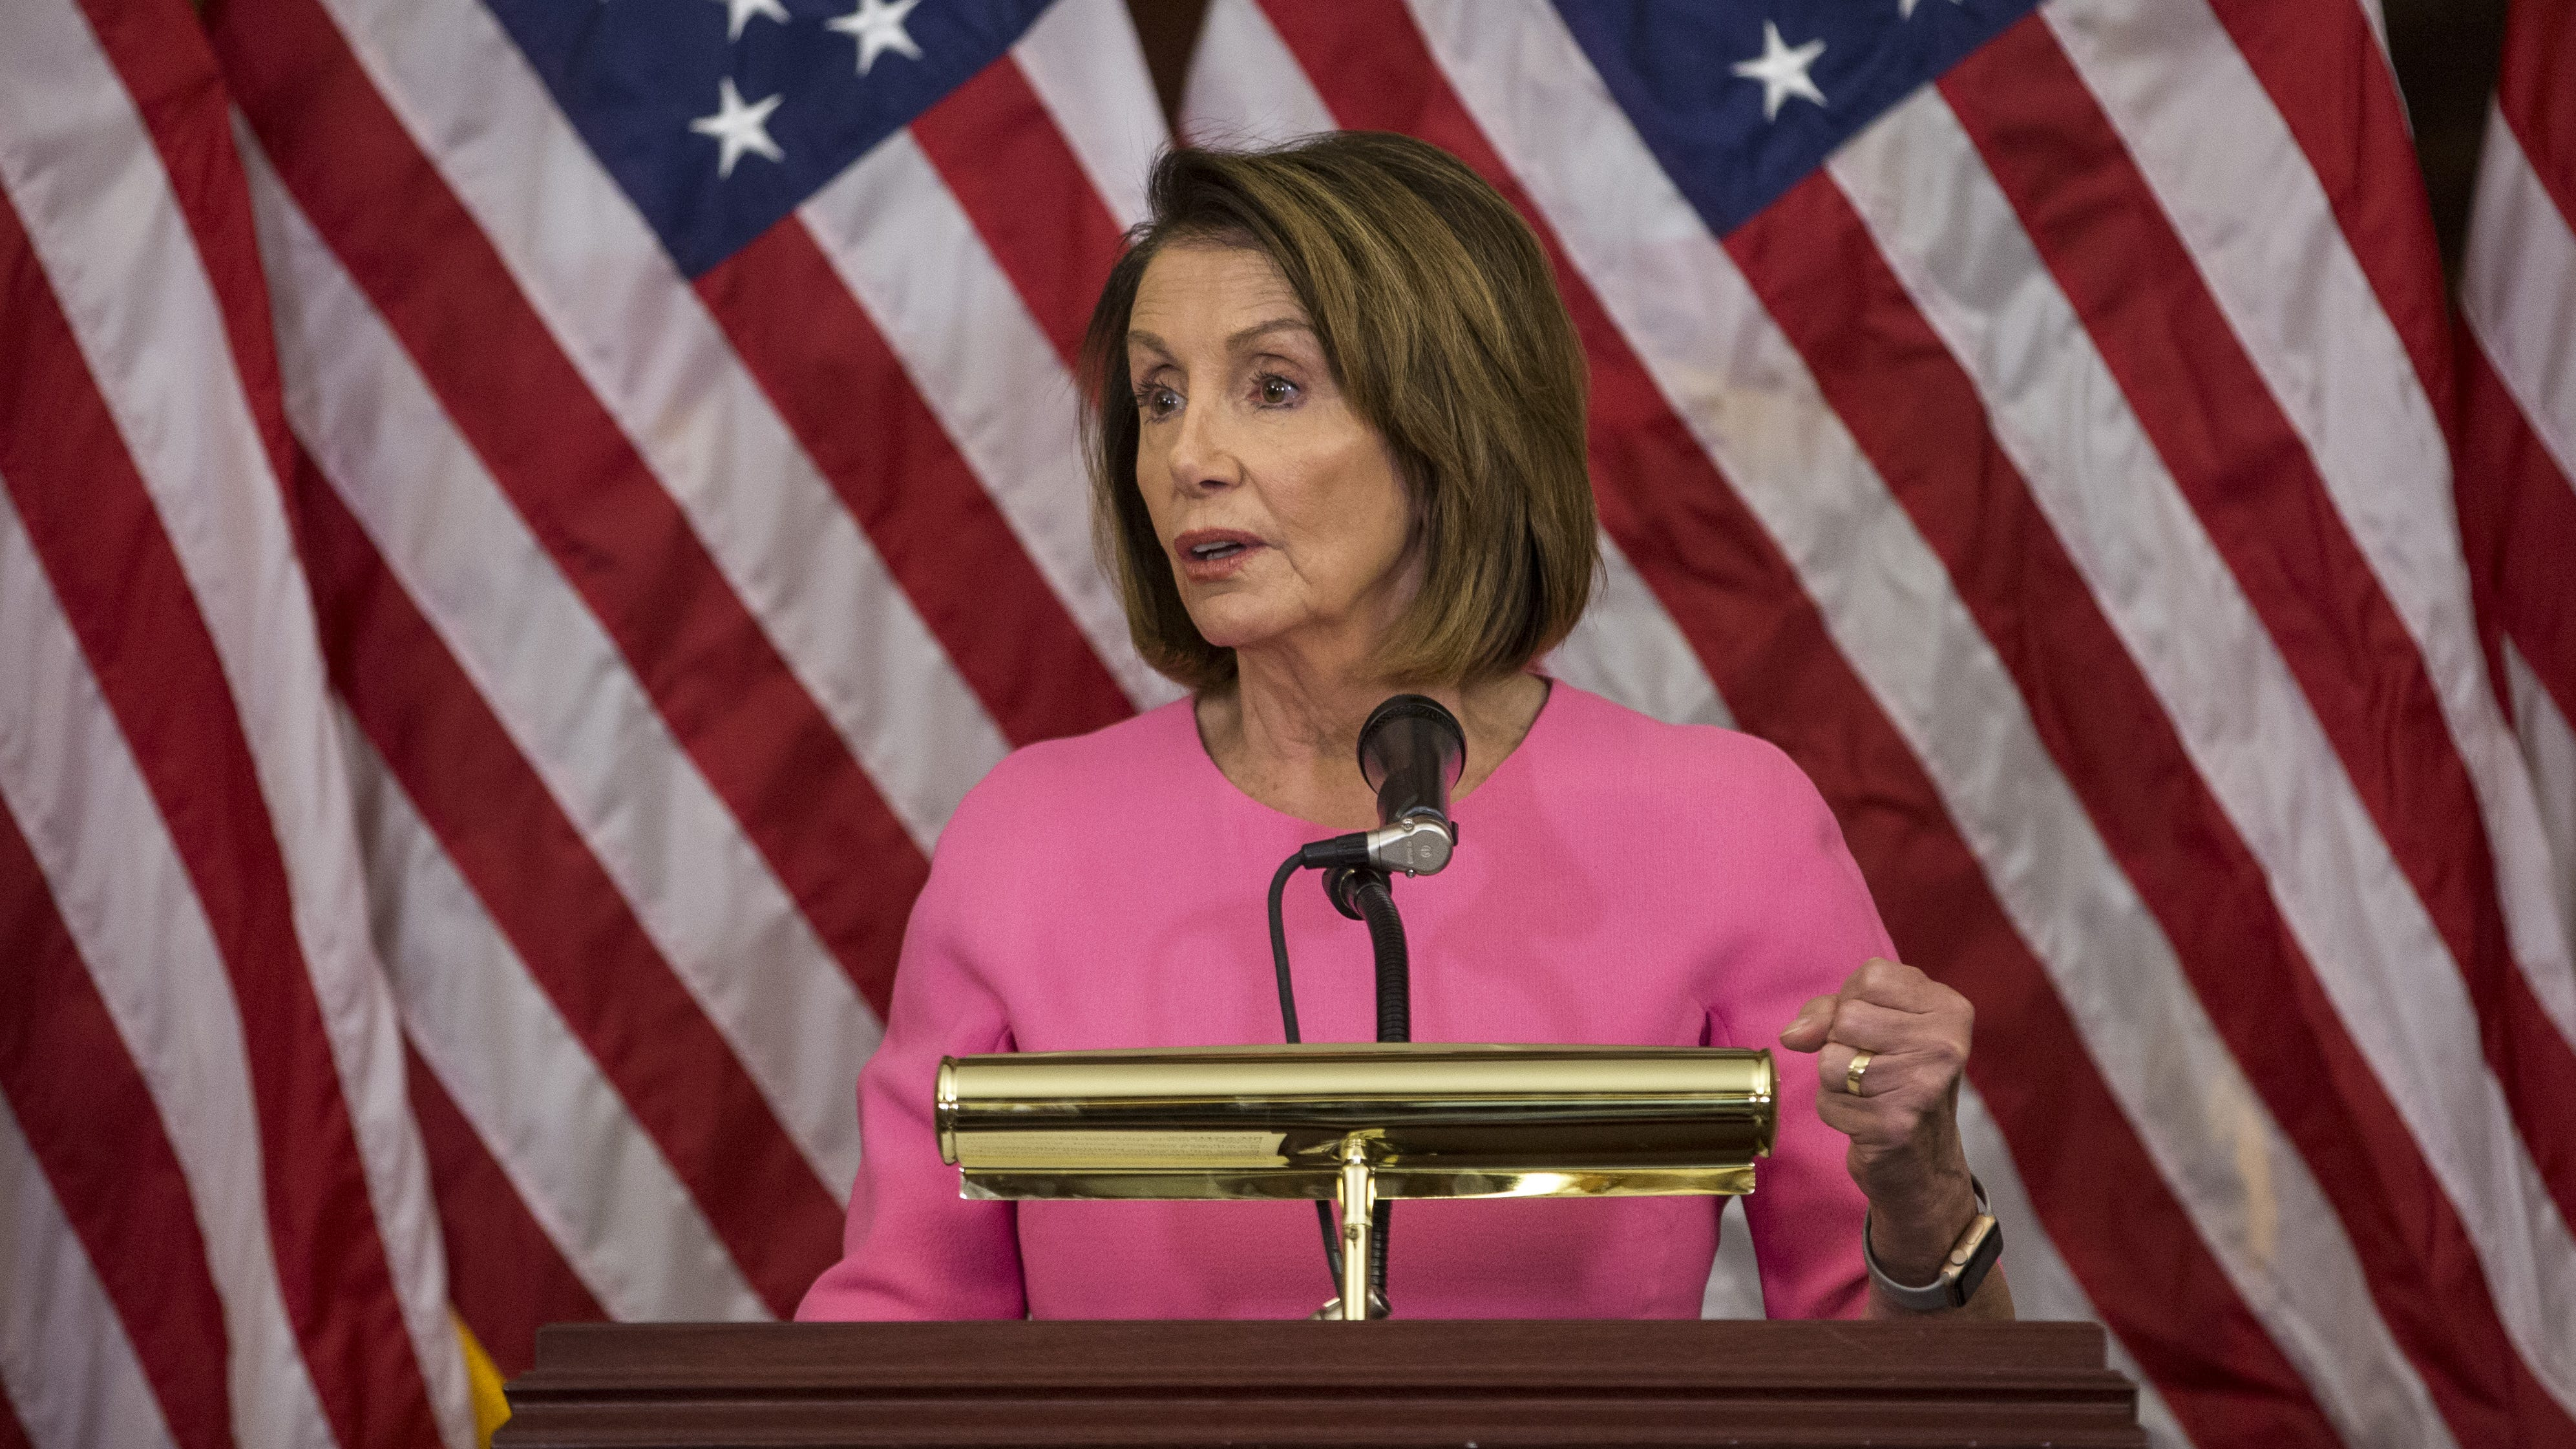 House Minority Leader Nancy Pelosi (D-CA) holds a news conference at the Capitol following the 2018 midterm elections. Republicans kept the Senate majority but lost control of the House to the Democrats.